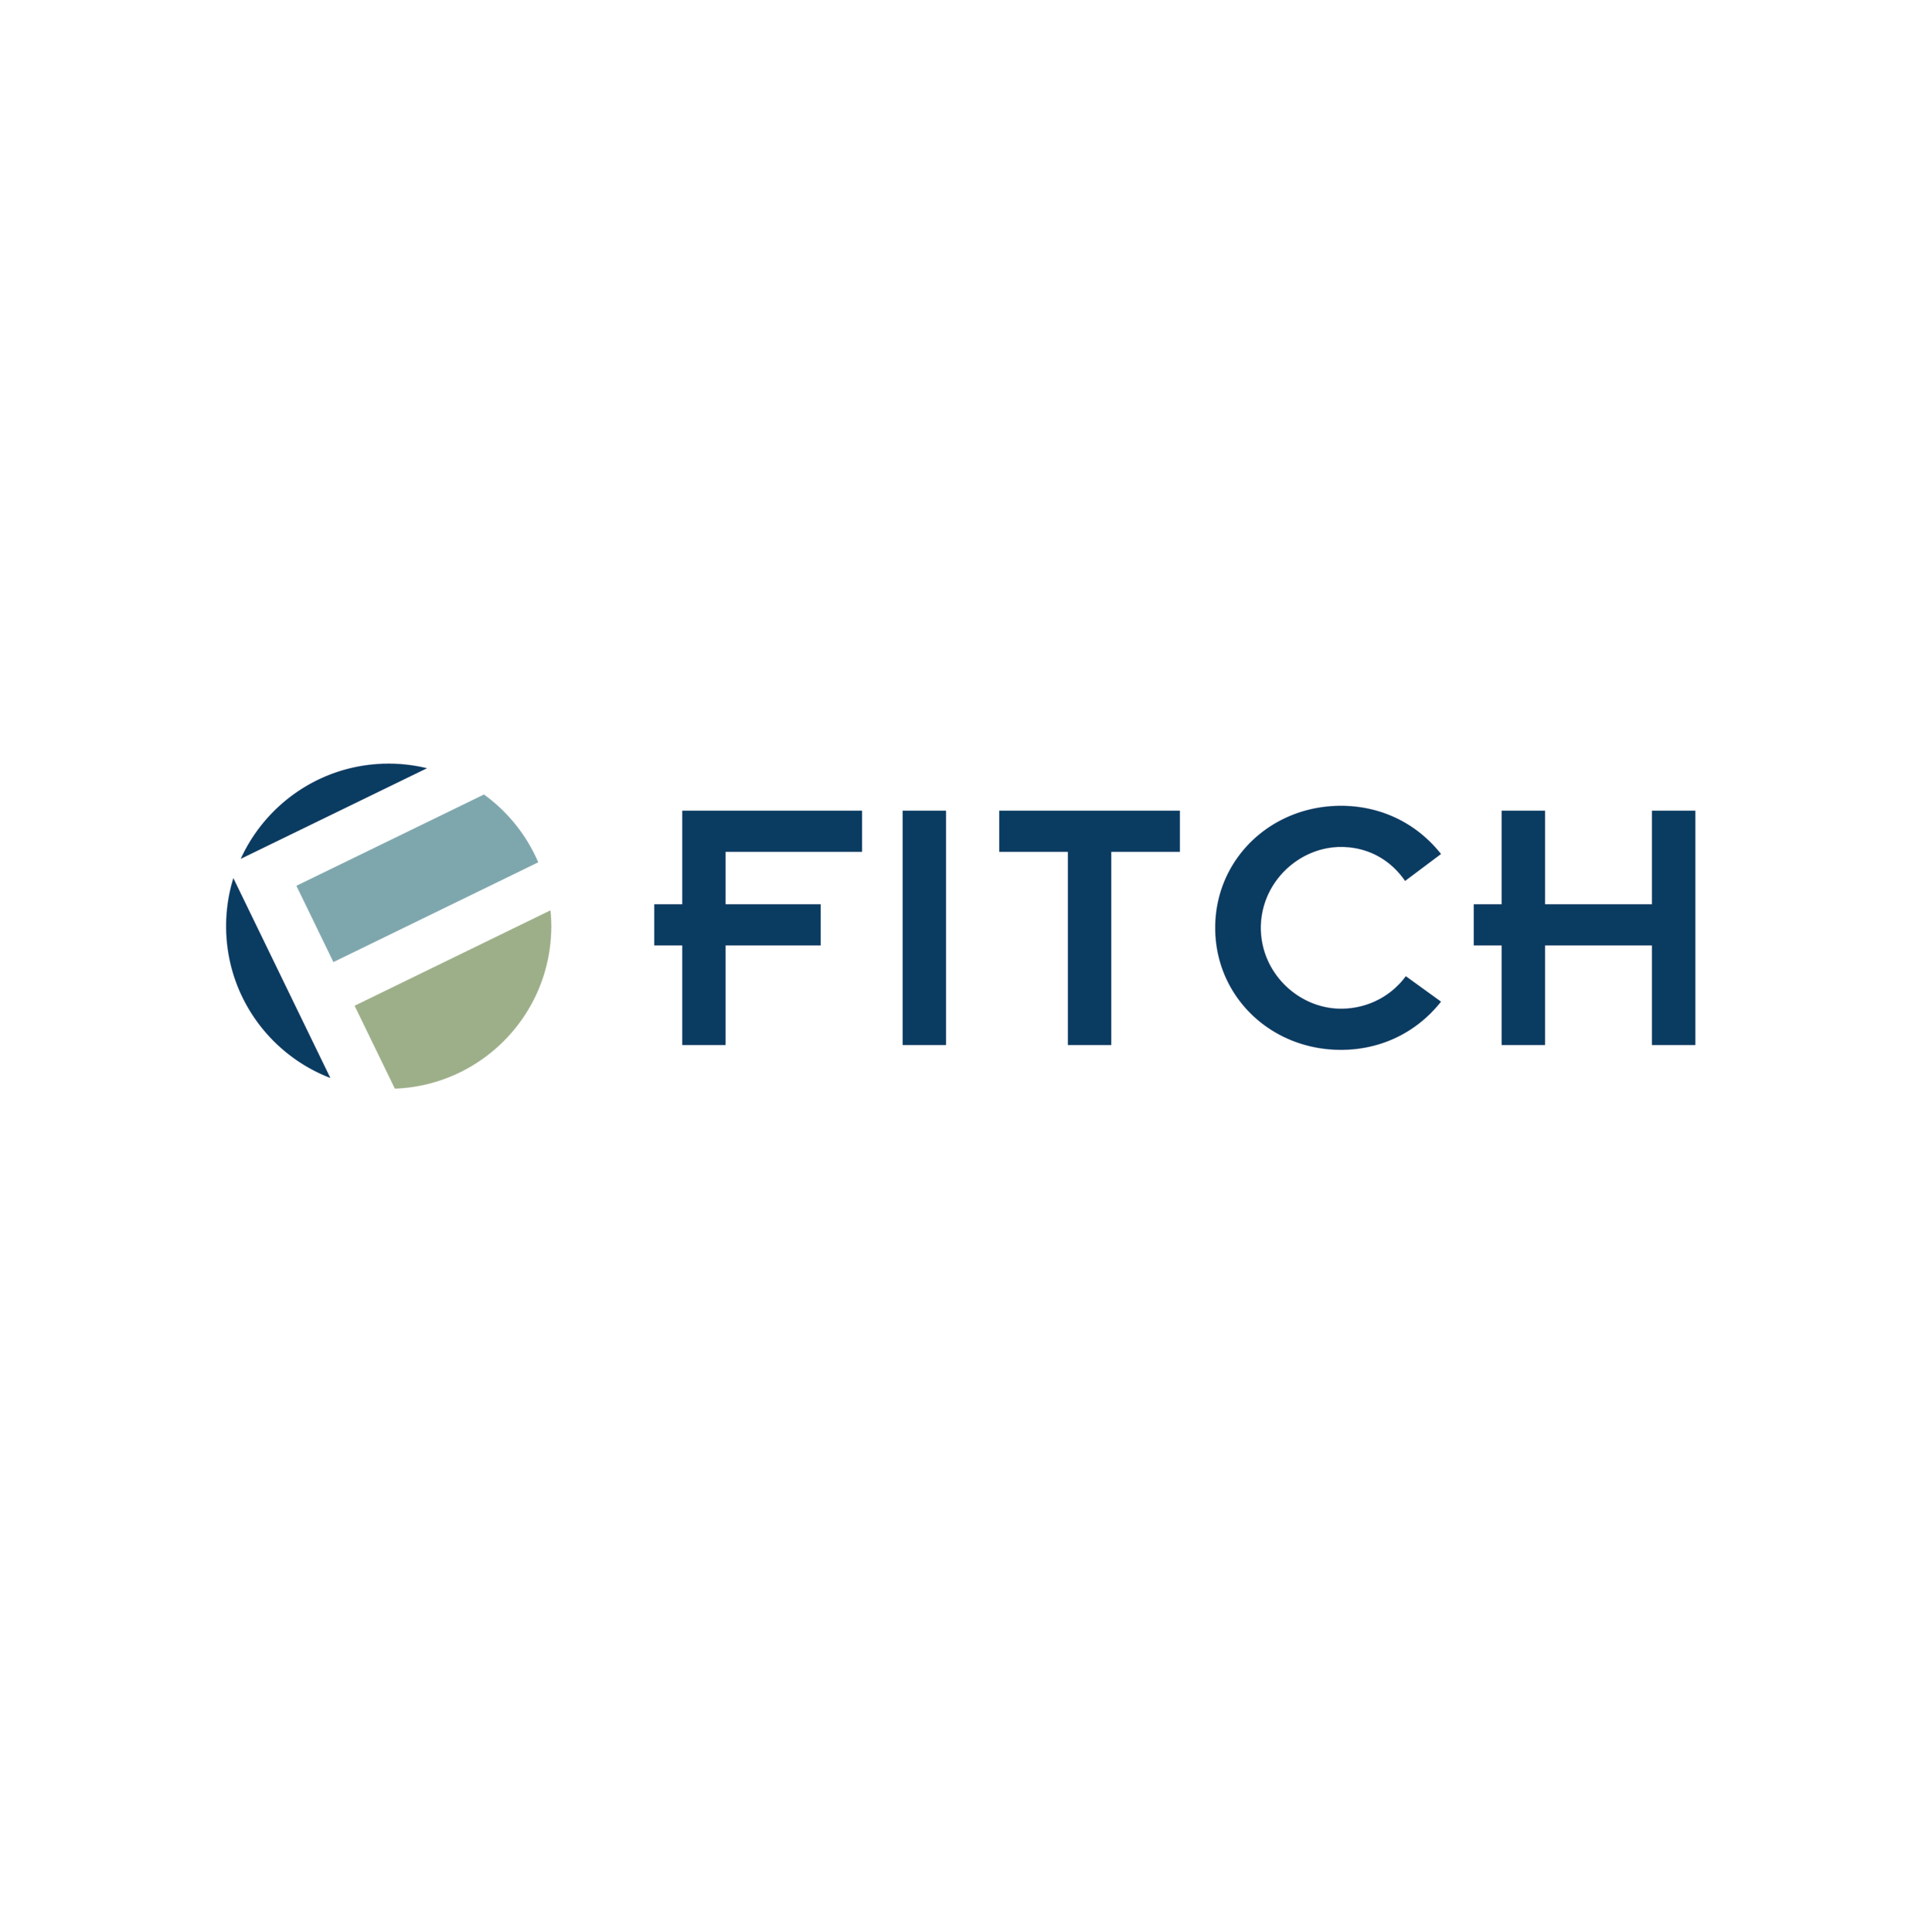 fitch LOGO for web.png